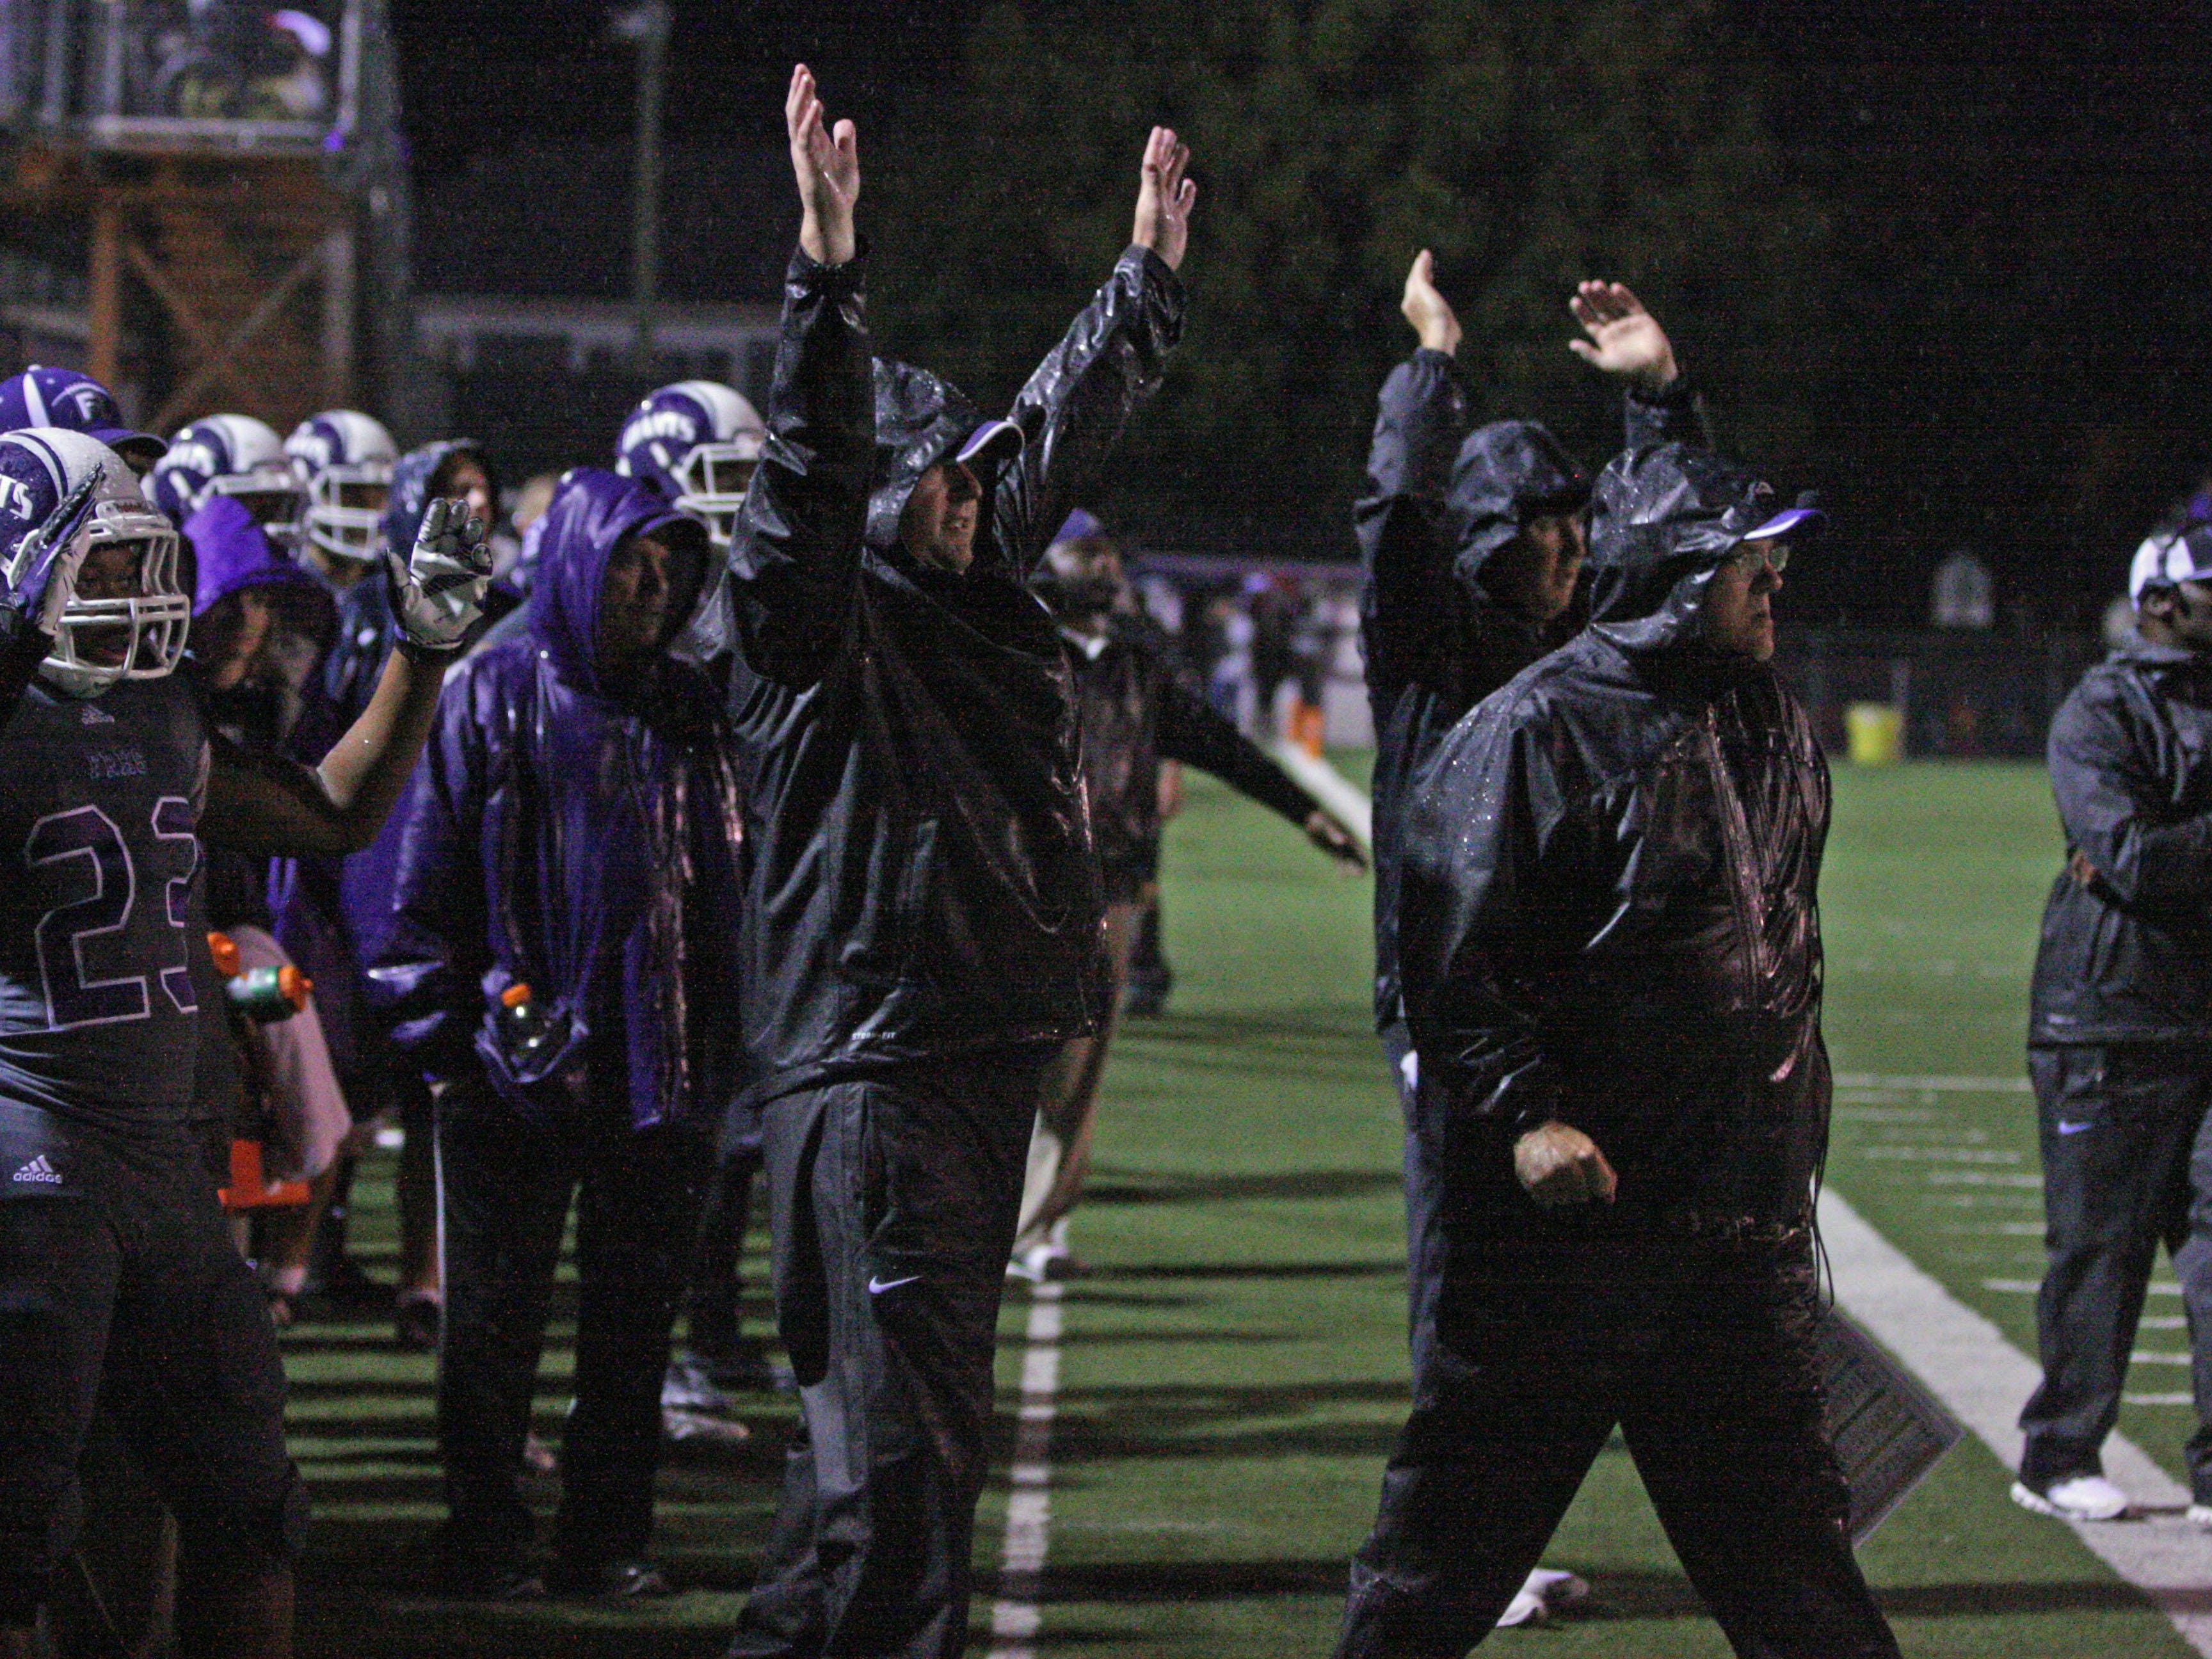 Ross' siideline reacts to a 4th quarter touchdown against Sandusky.